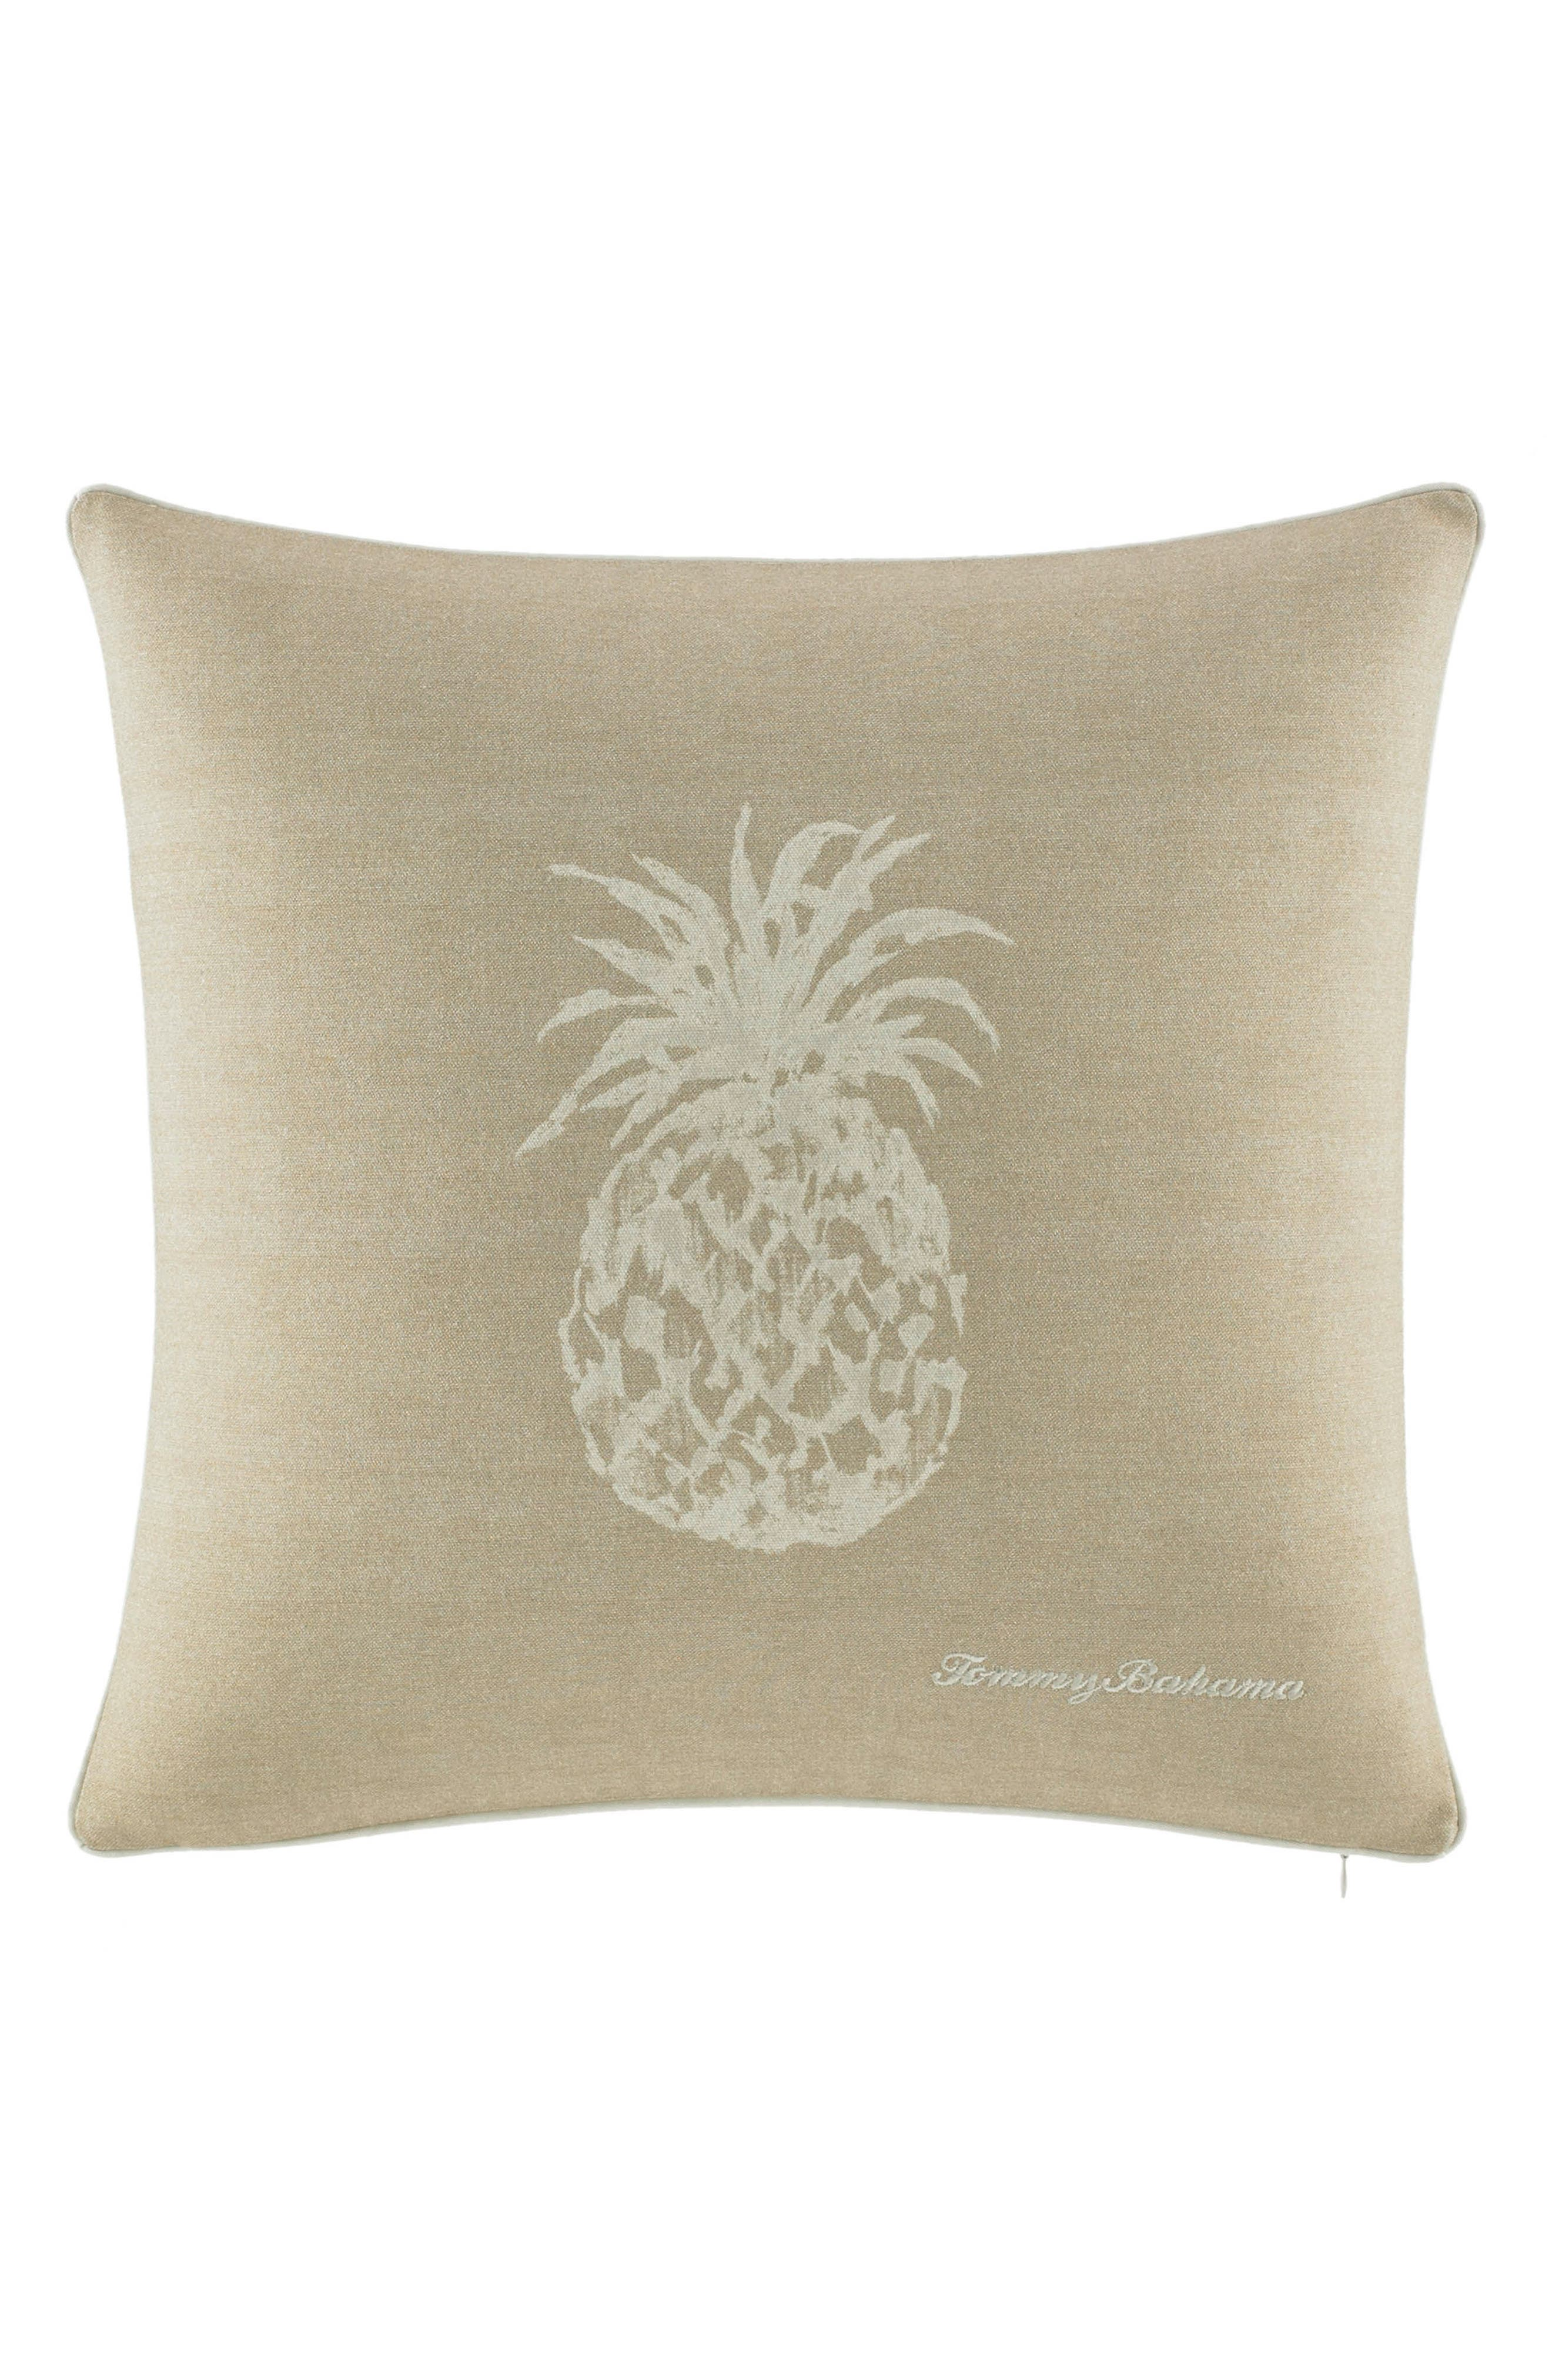 Alternate Image 1 Selected - Tommy Bahama Pineapple Canvas Accent Pillow